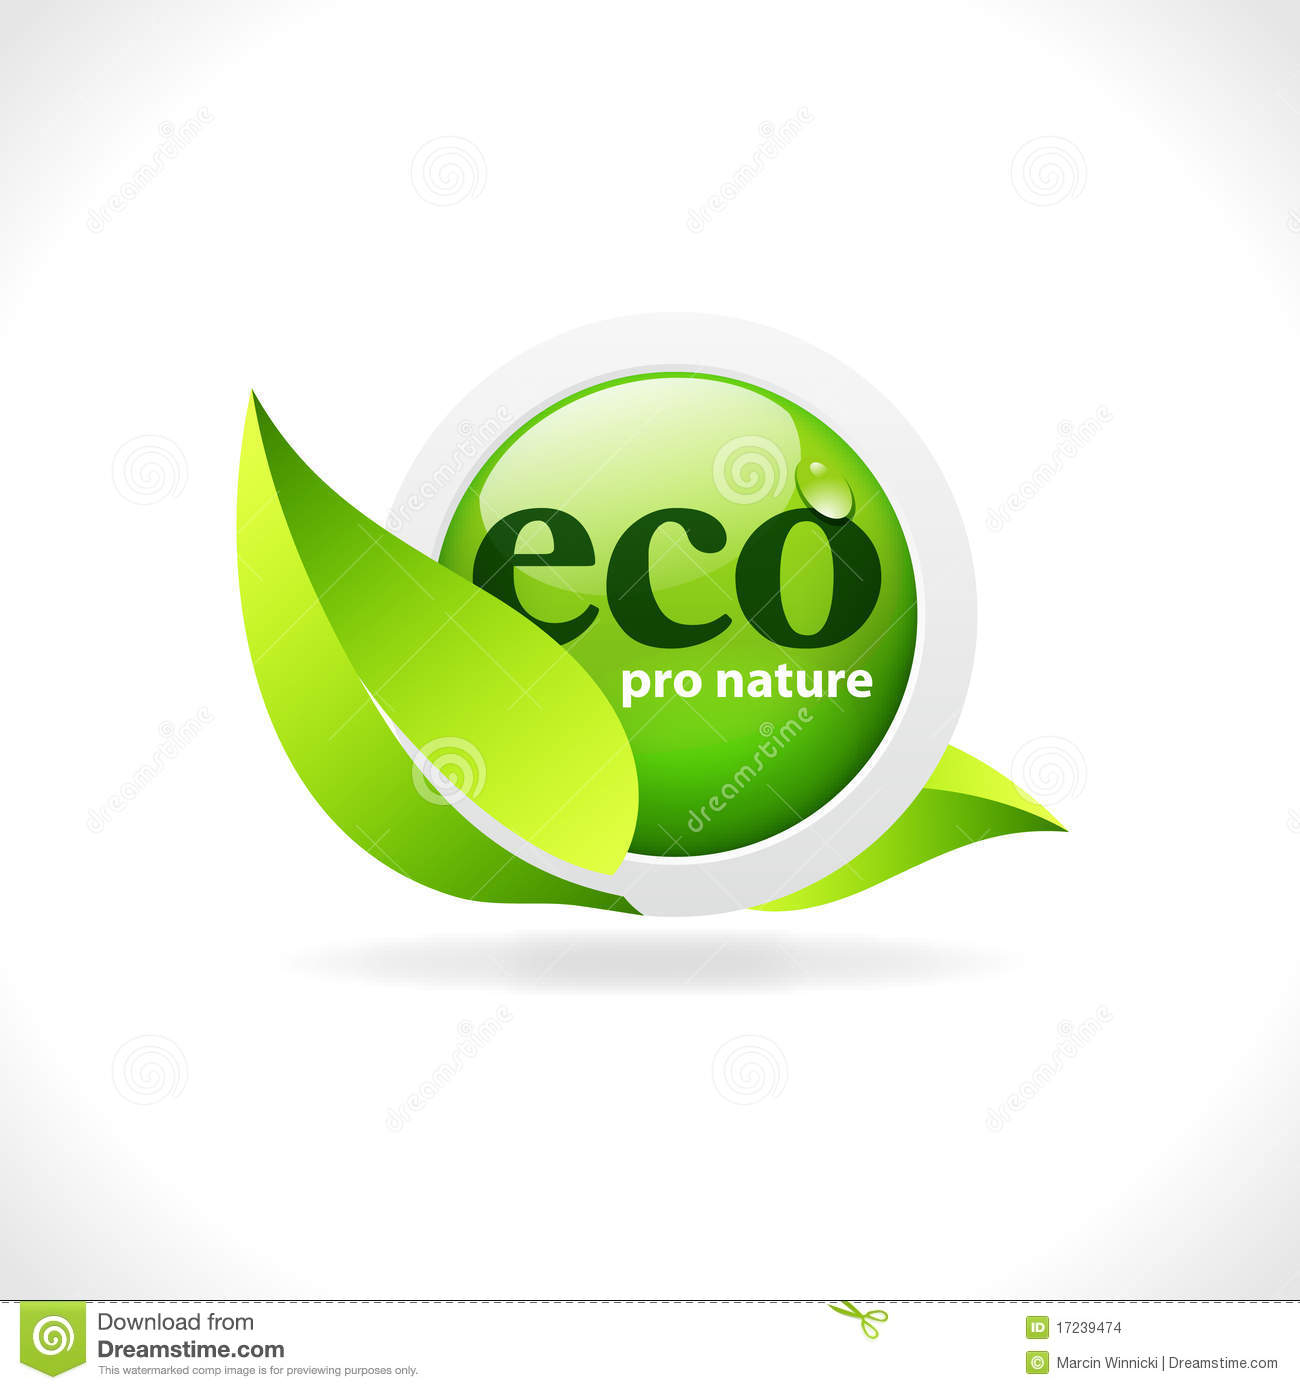 Business Pioneers Forge Green Tourism Models